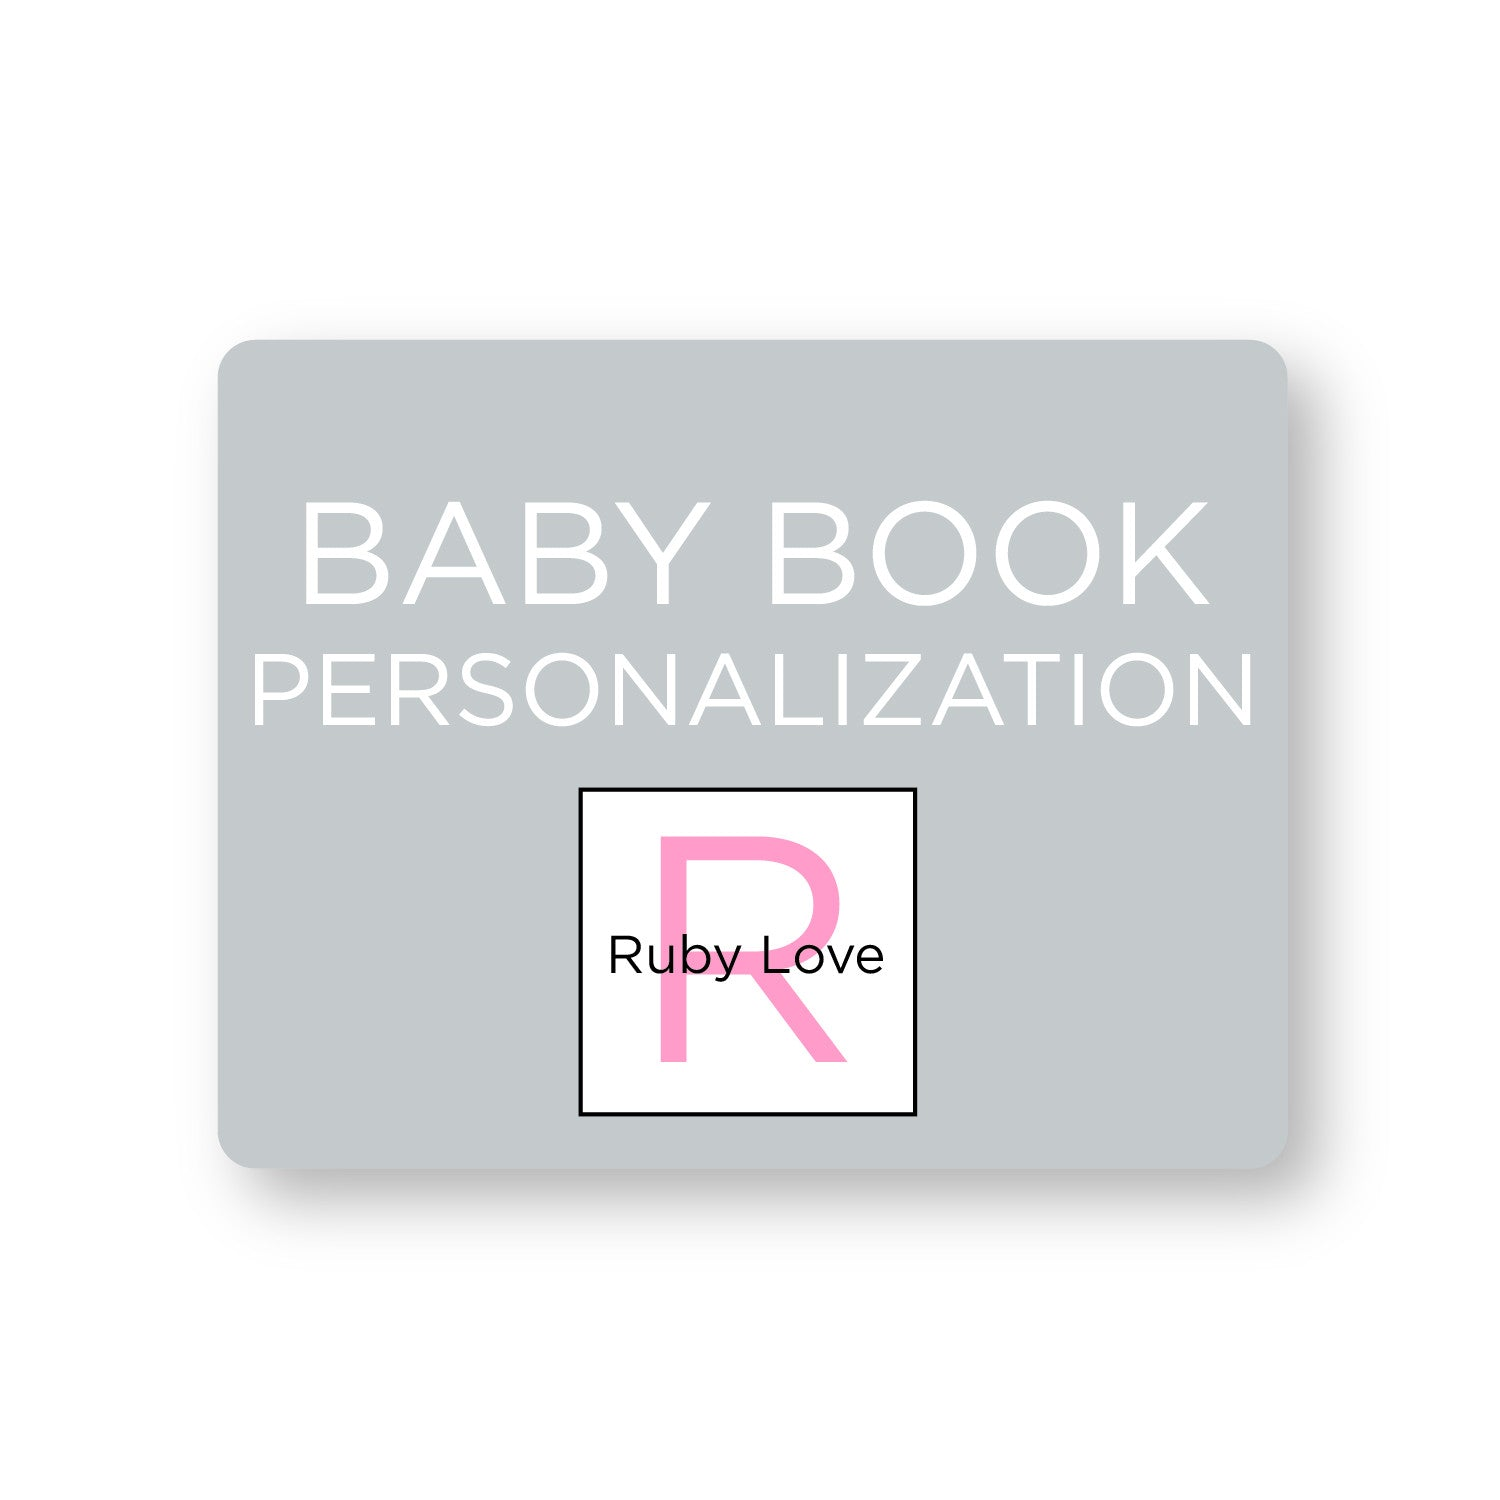 Personalize Your Baby Book!